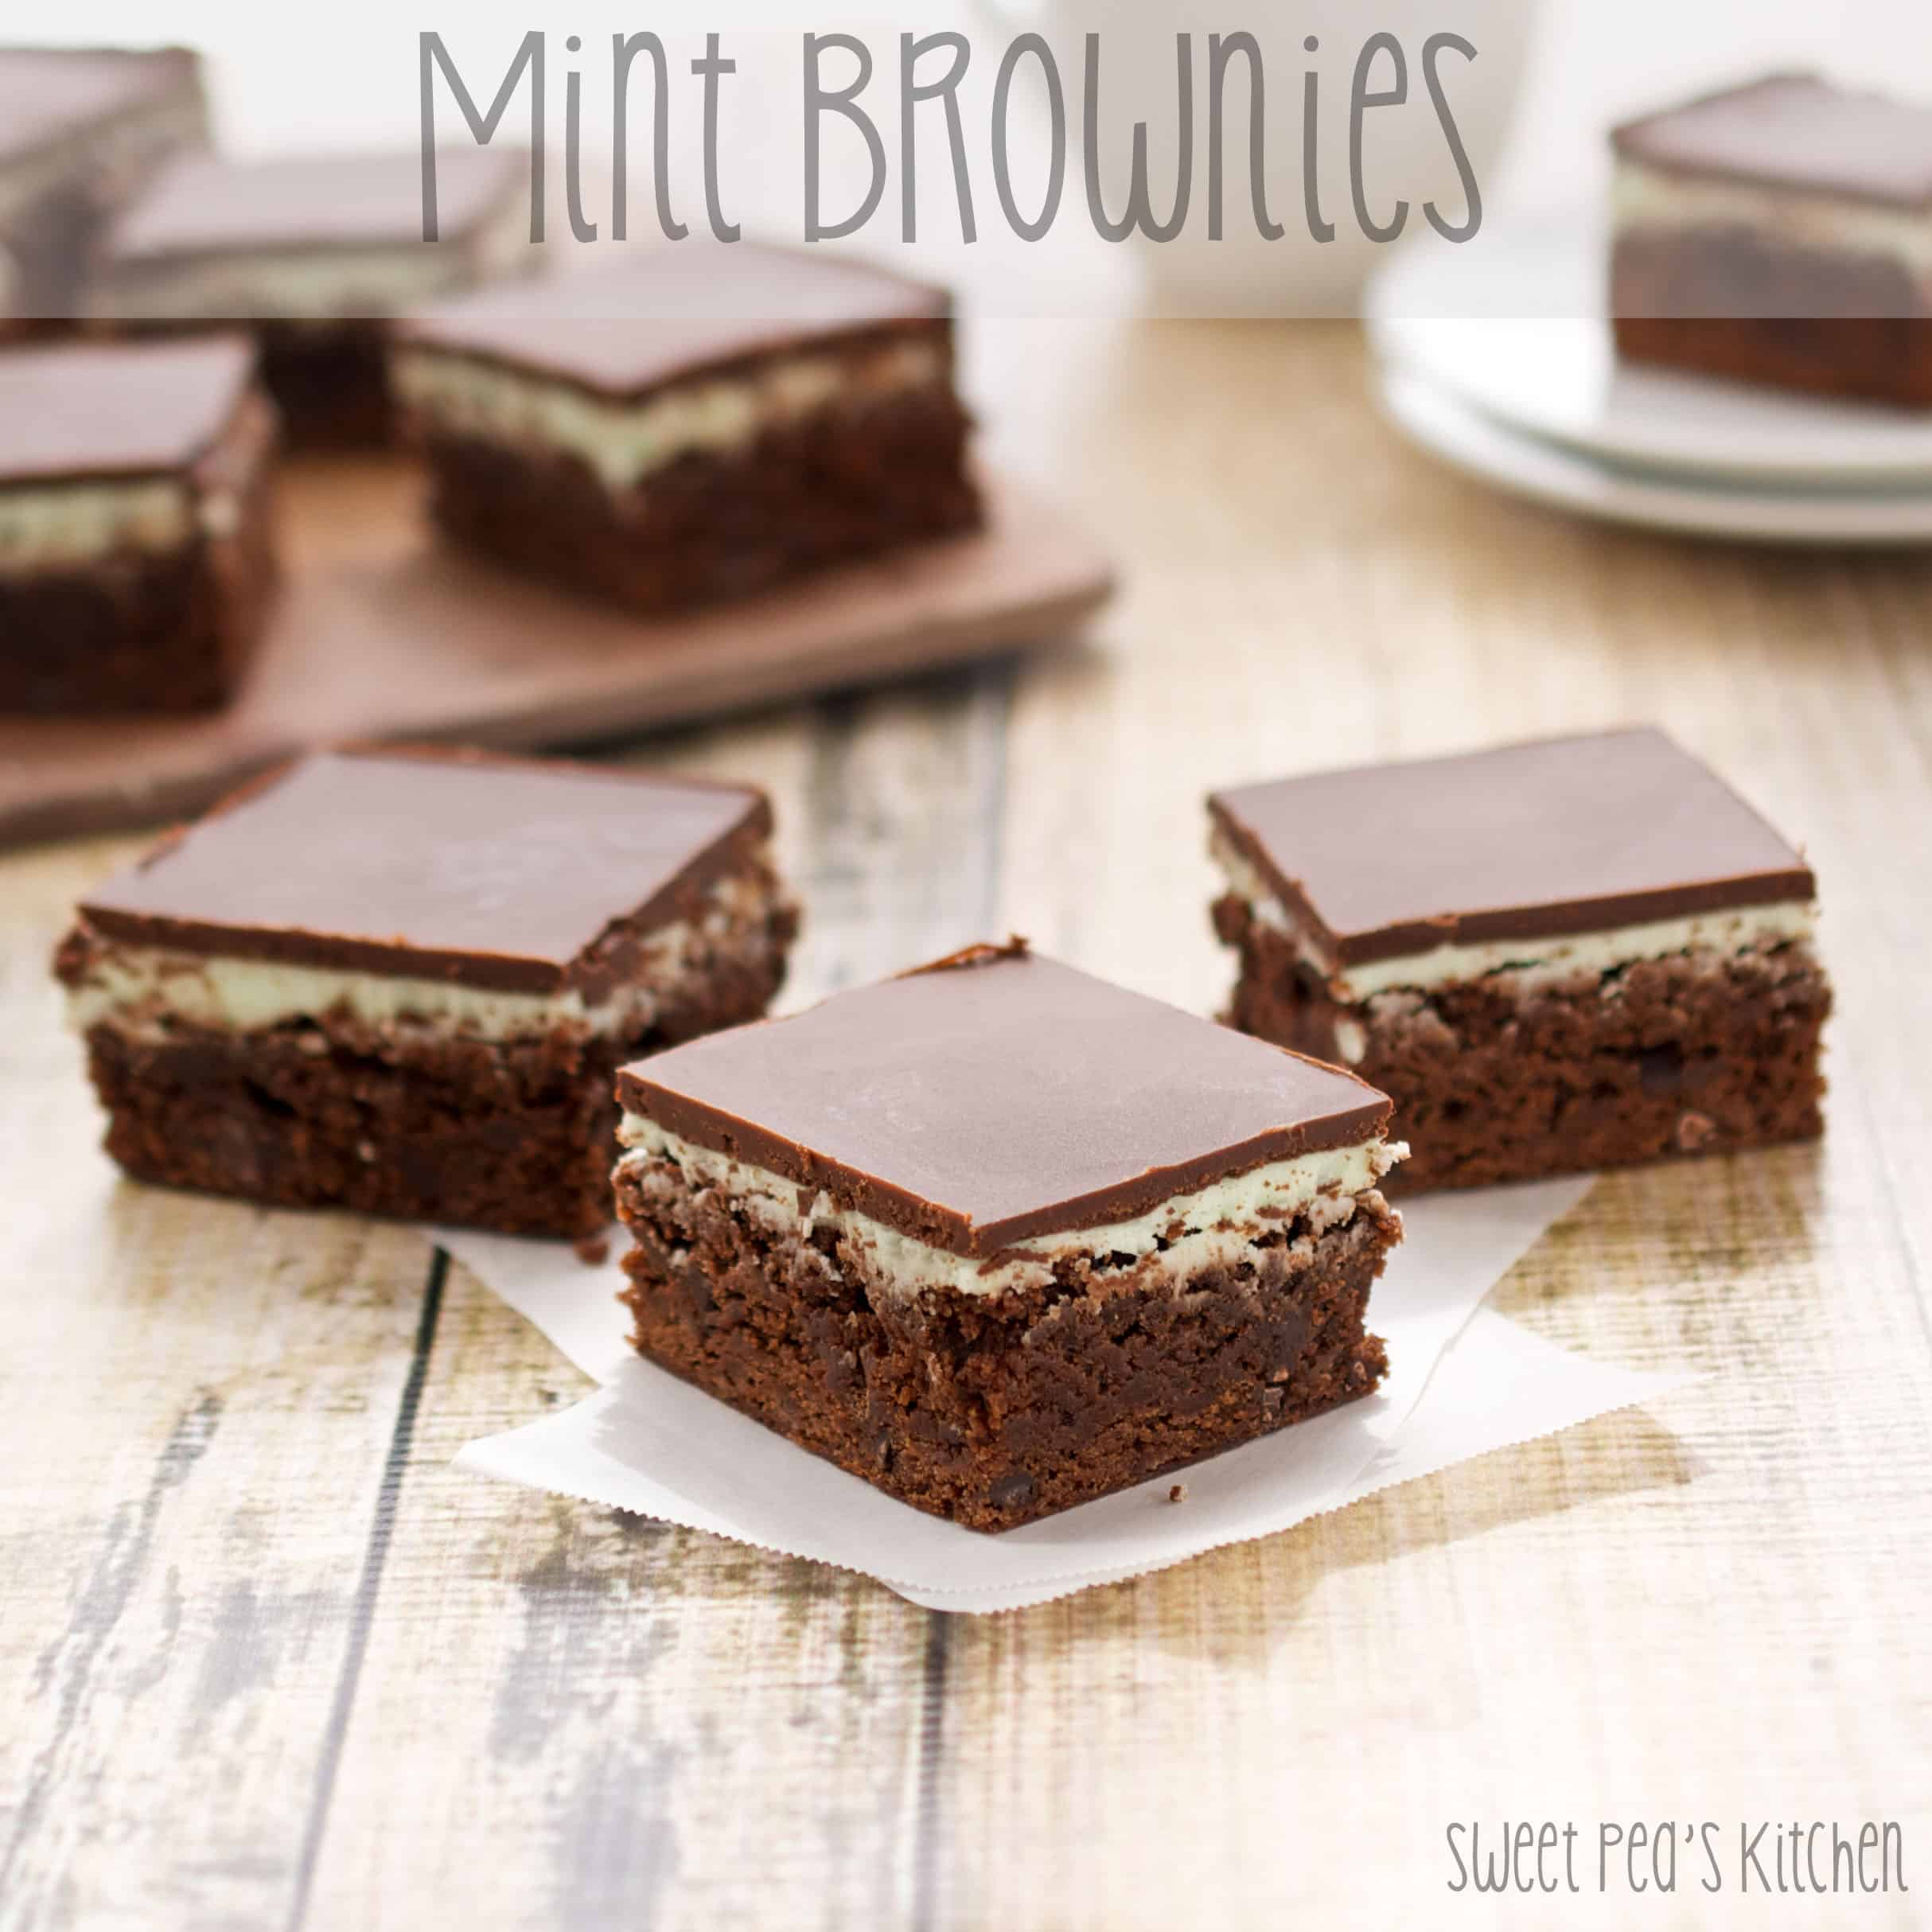 several ready to eat mint brownies